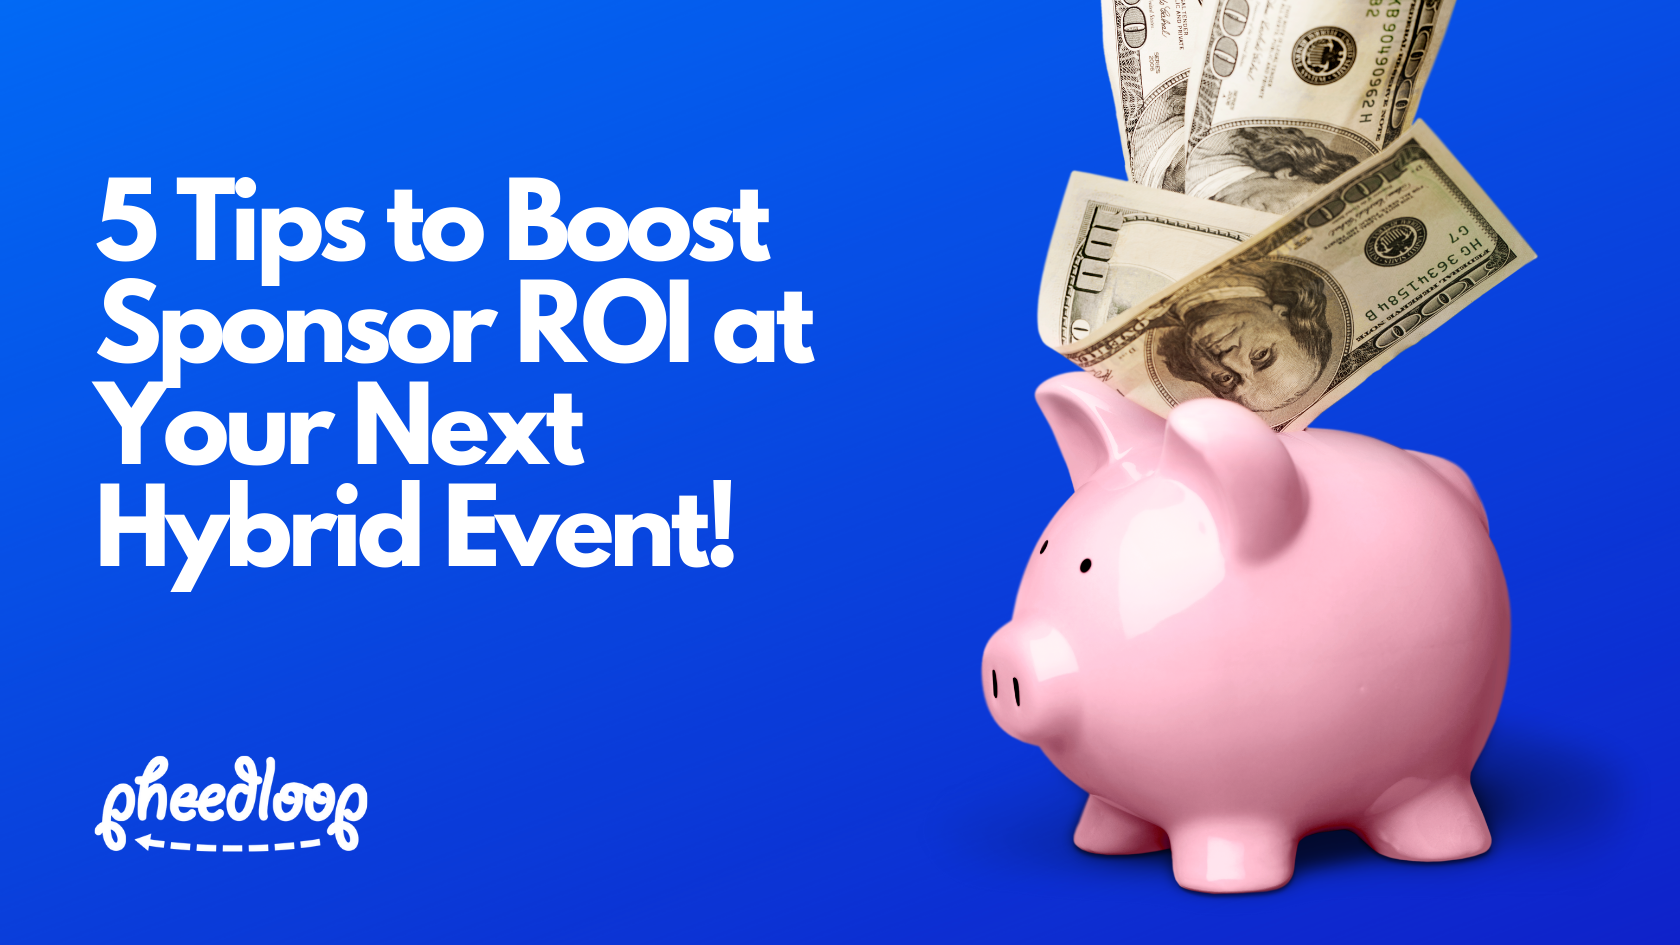 5 Ideas to Boost Sponsor ROI at Your Next Hybrid Event